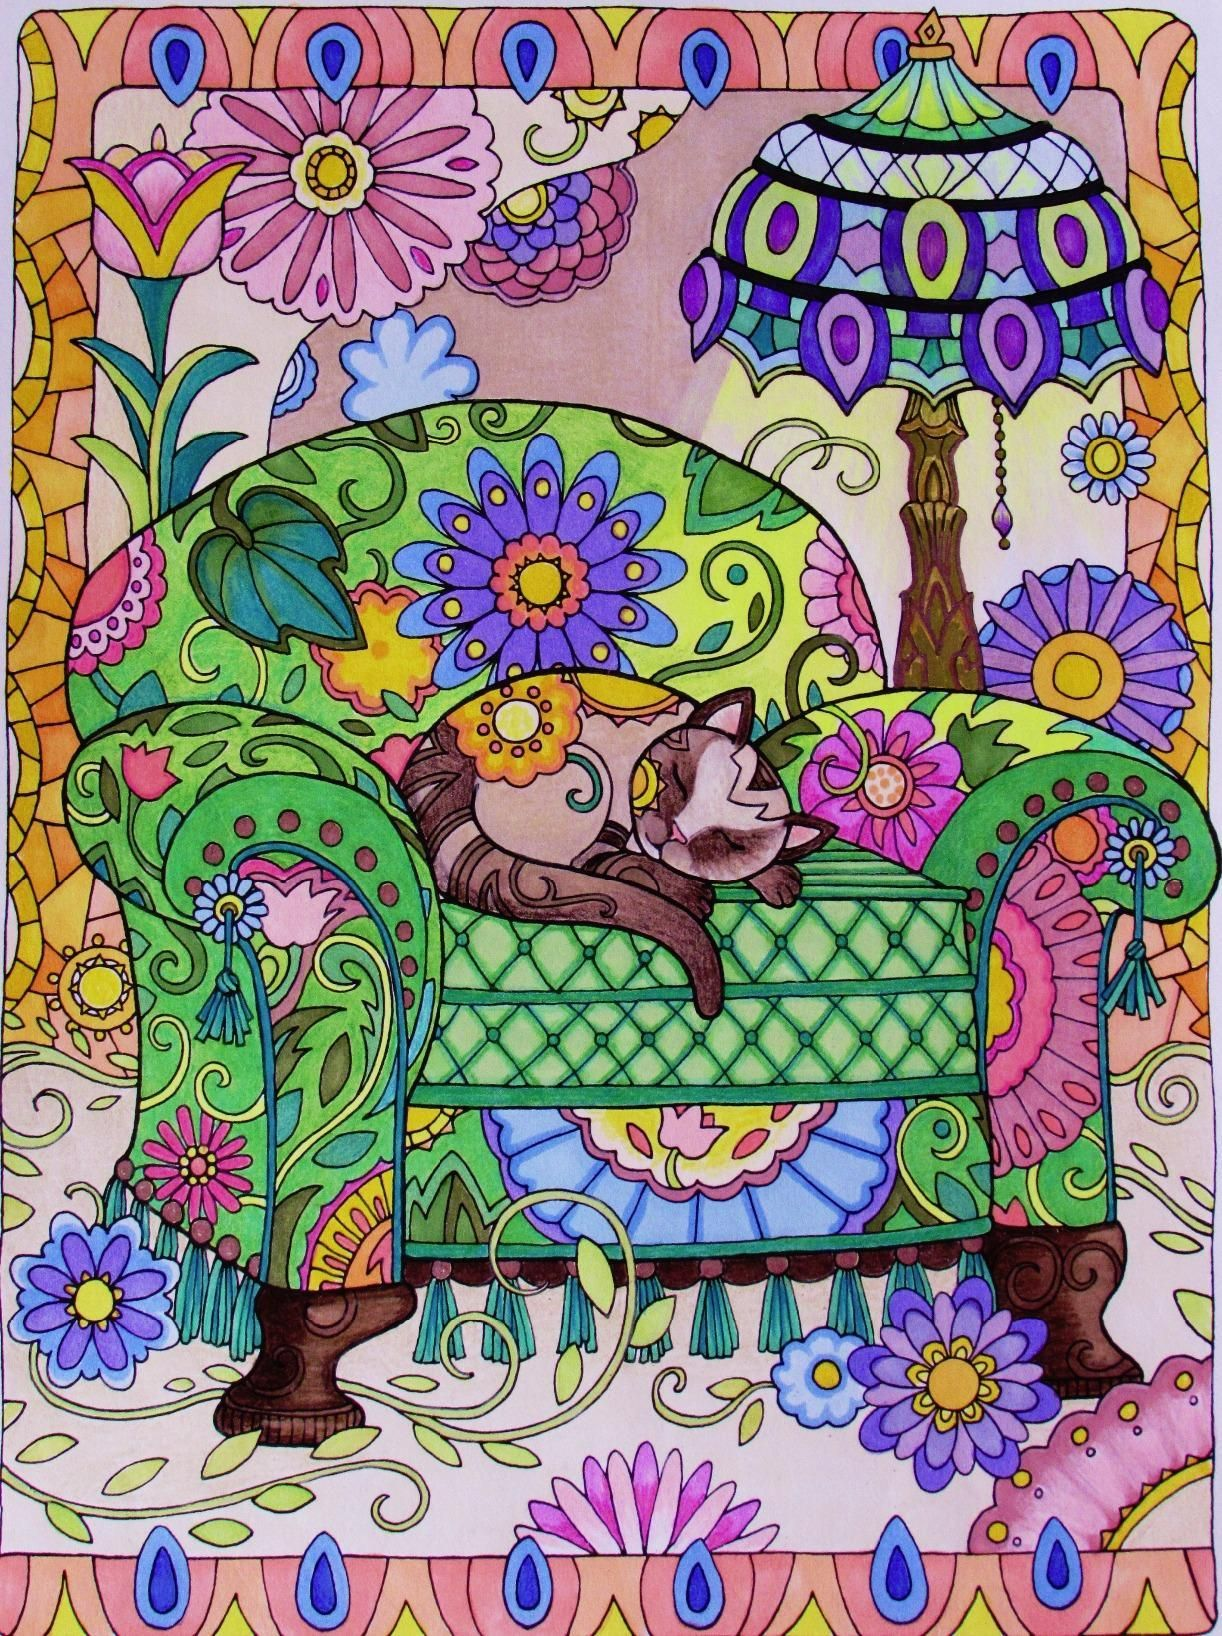 Creative Haven Cats Coloring Book Books Marjorie Sarnat By Jules Cote On Oct 20 2015